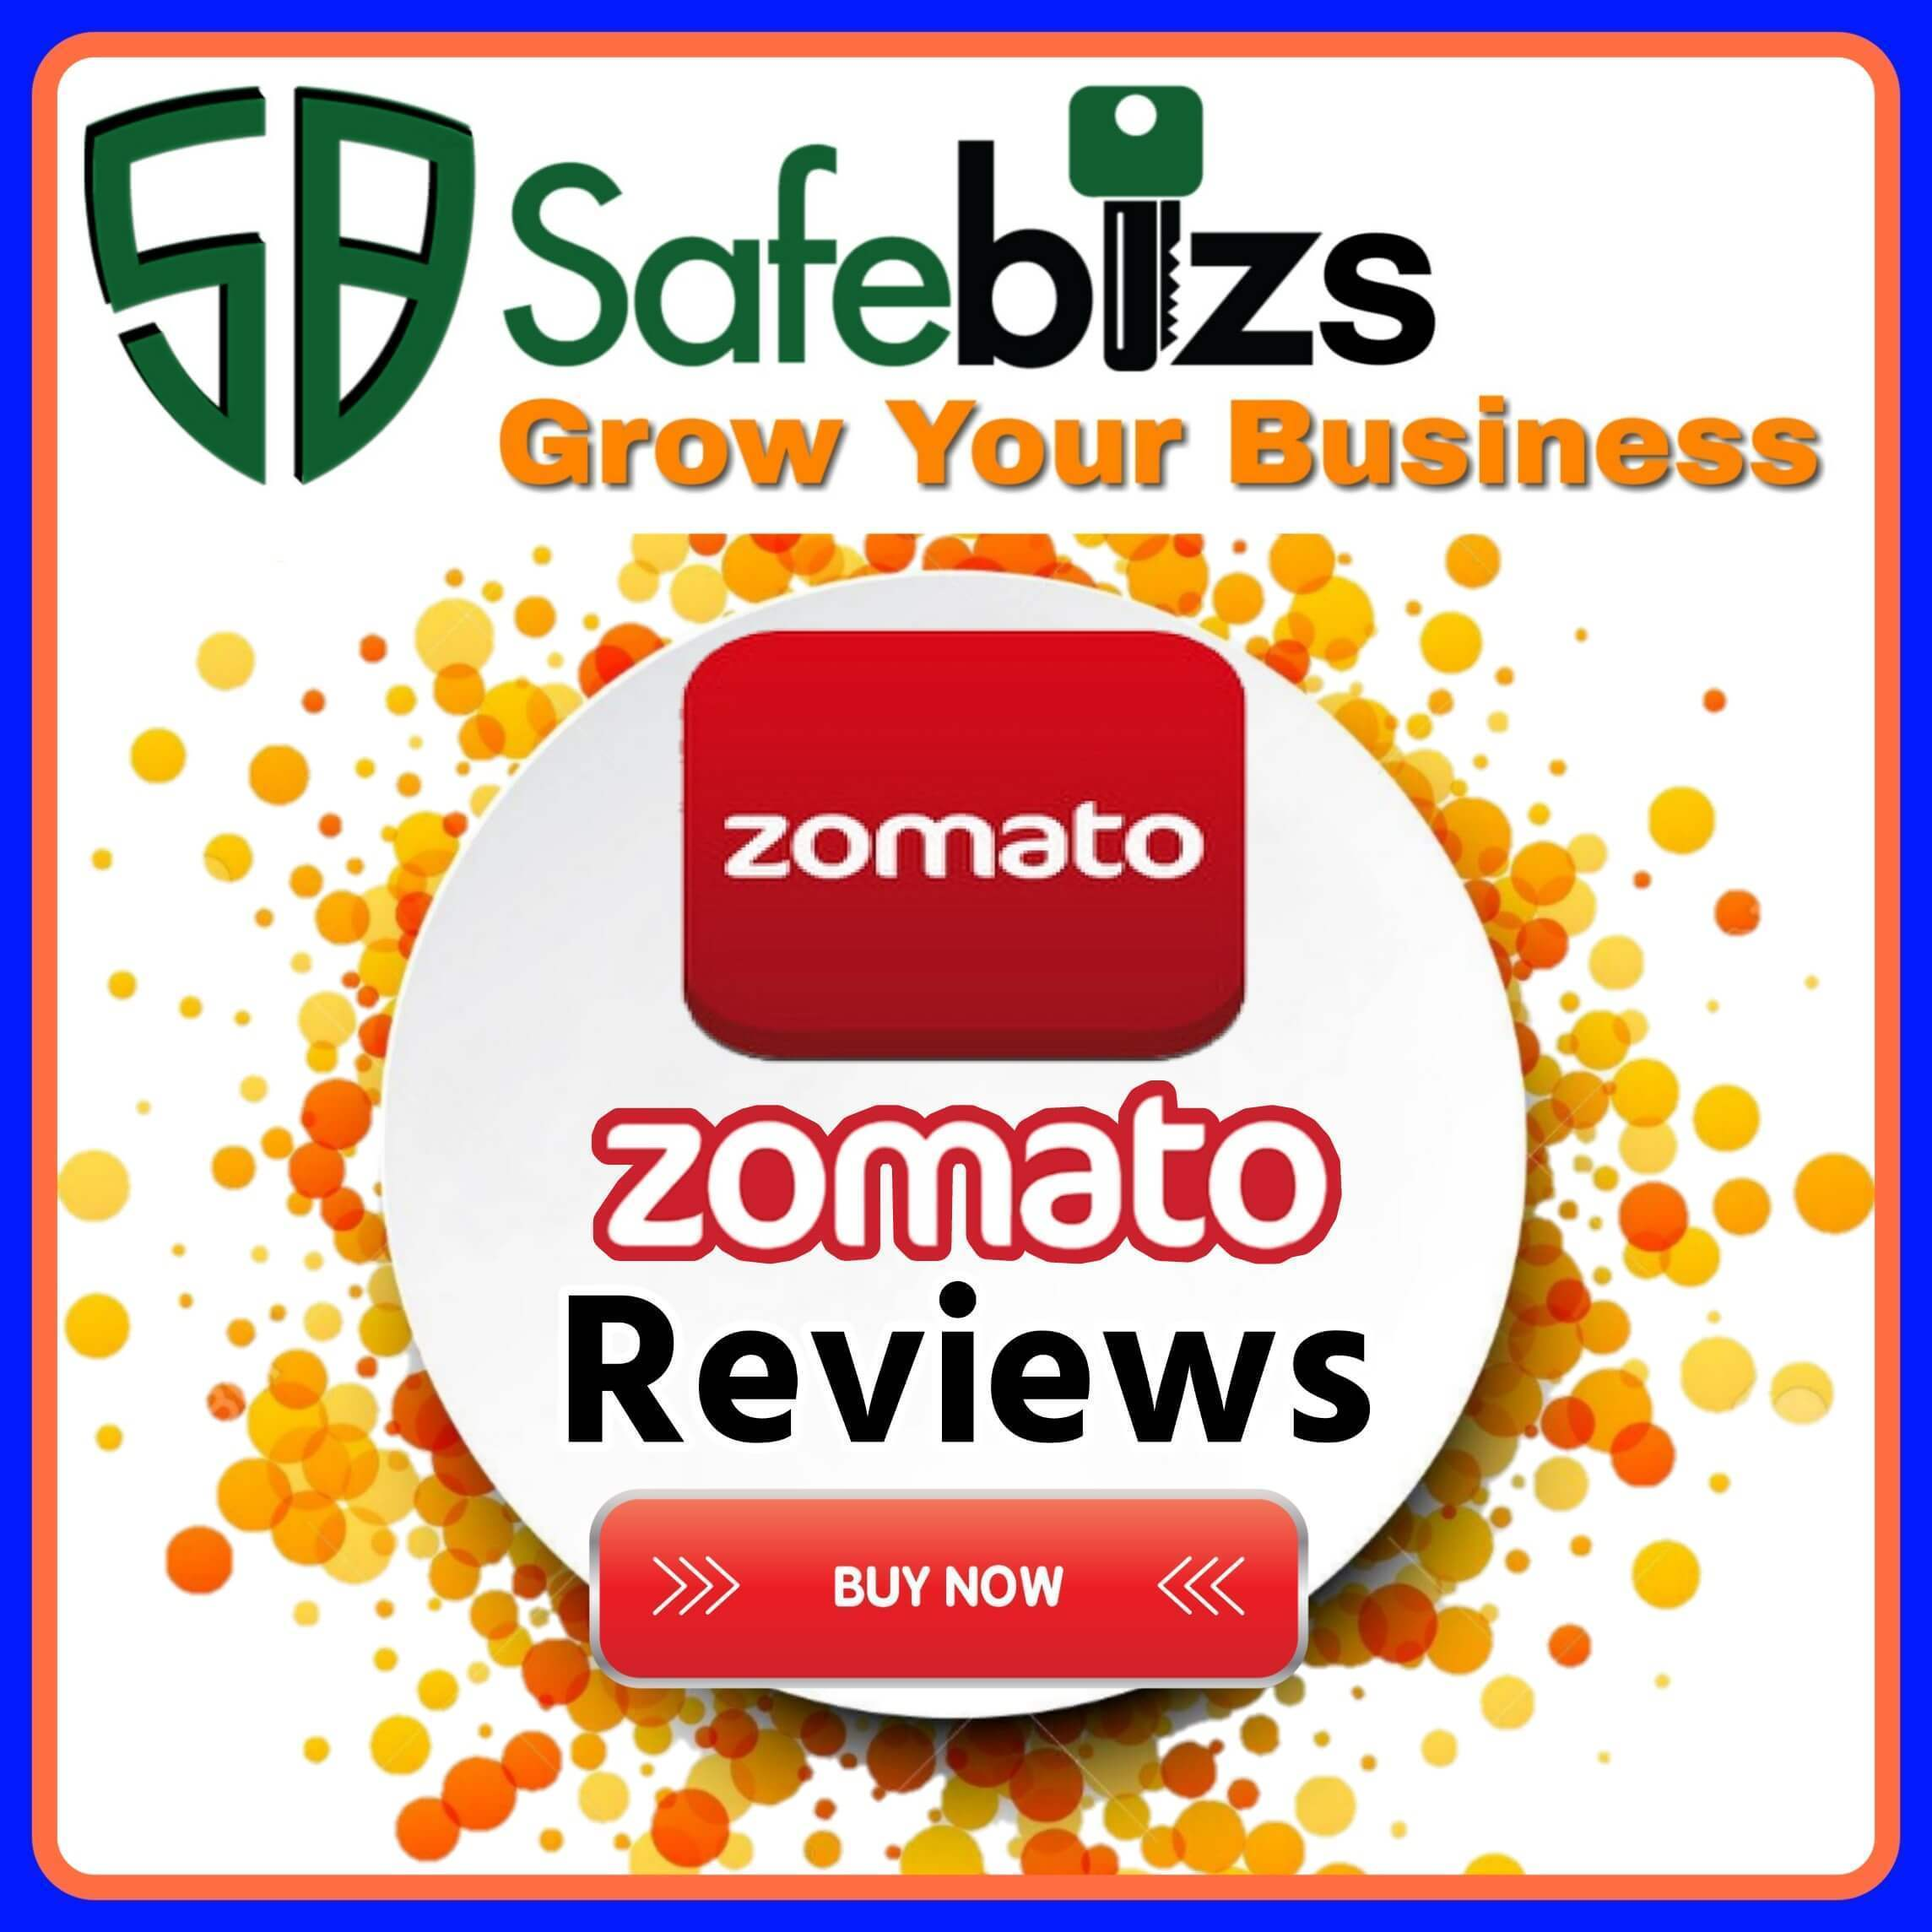 Buy Zomato Reviews - 100% Non Drop Zomato 5 Star Reviews